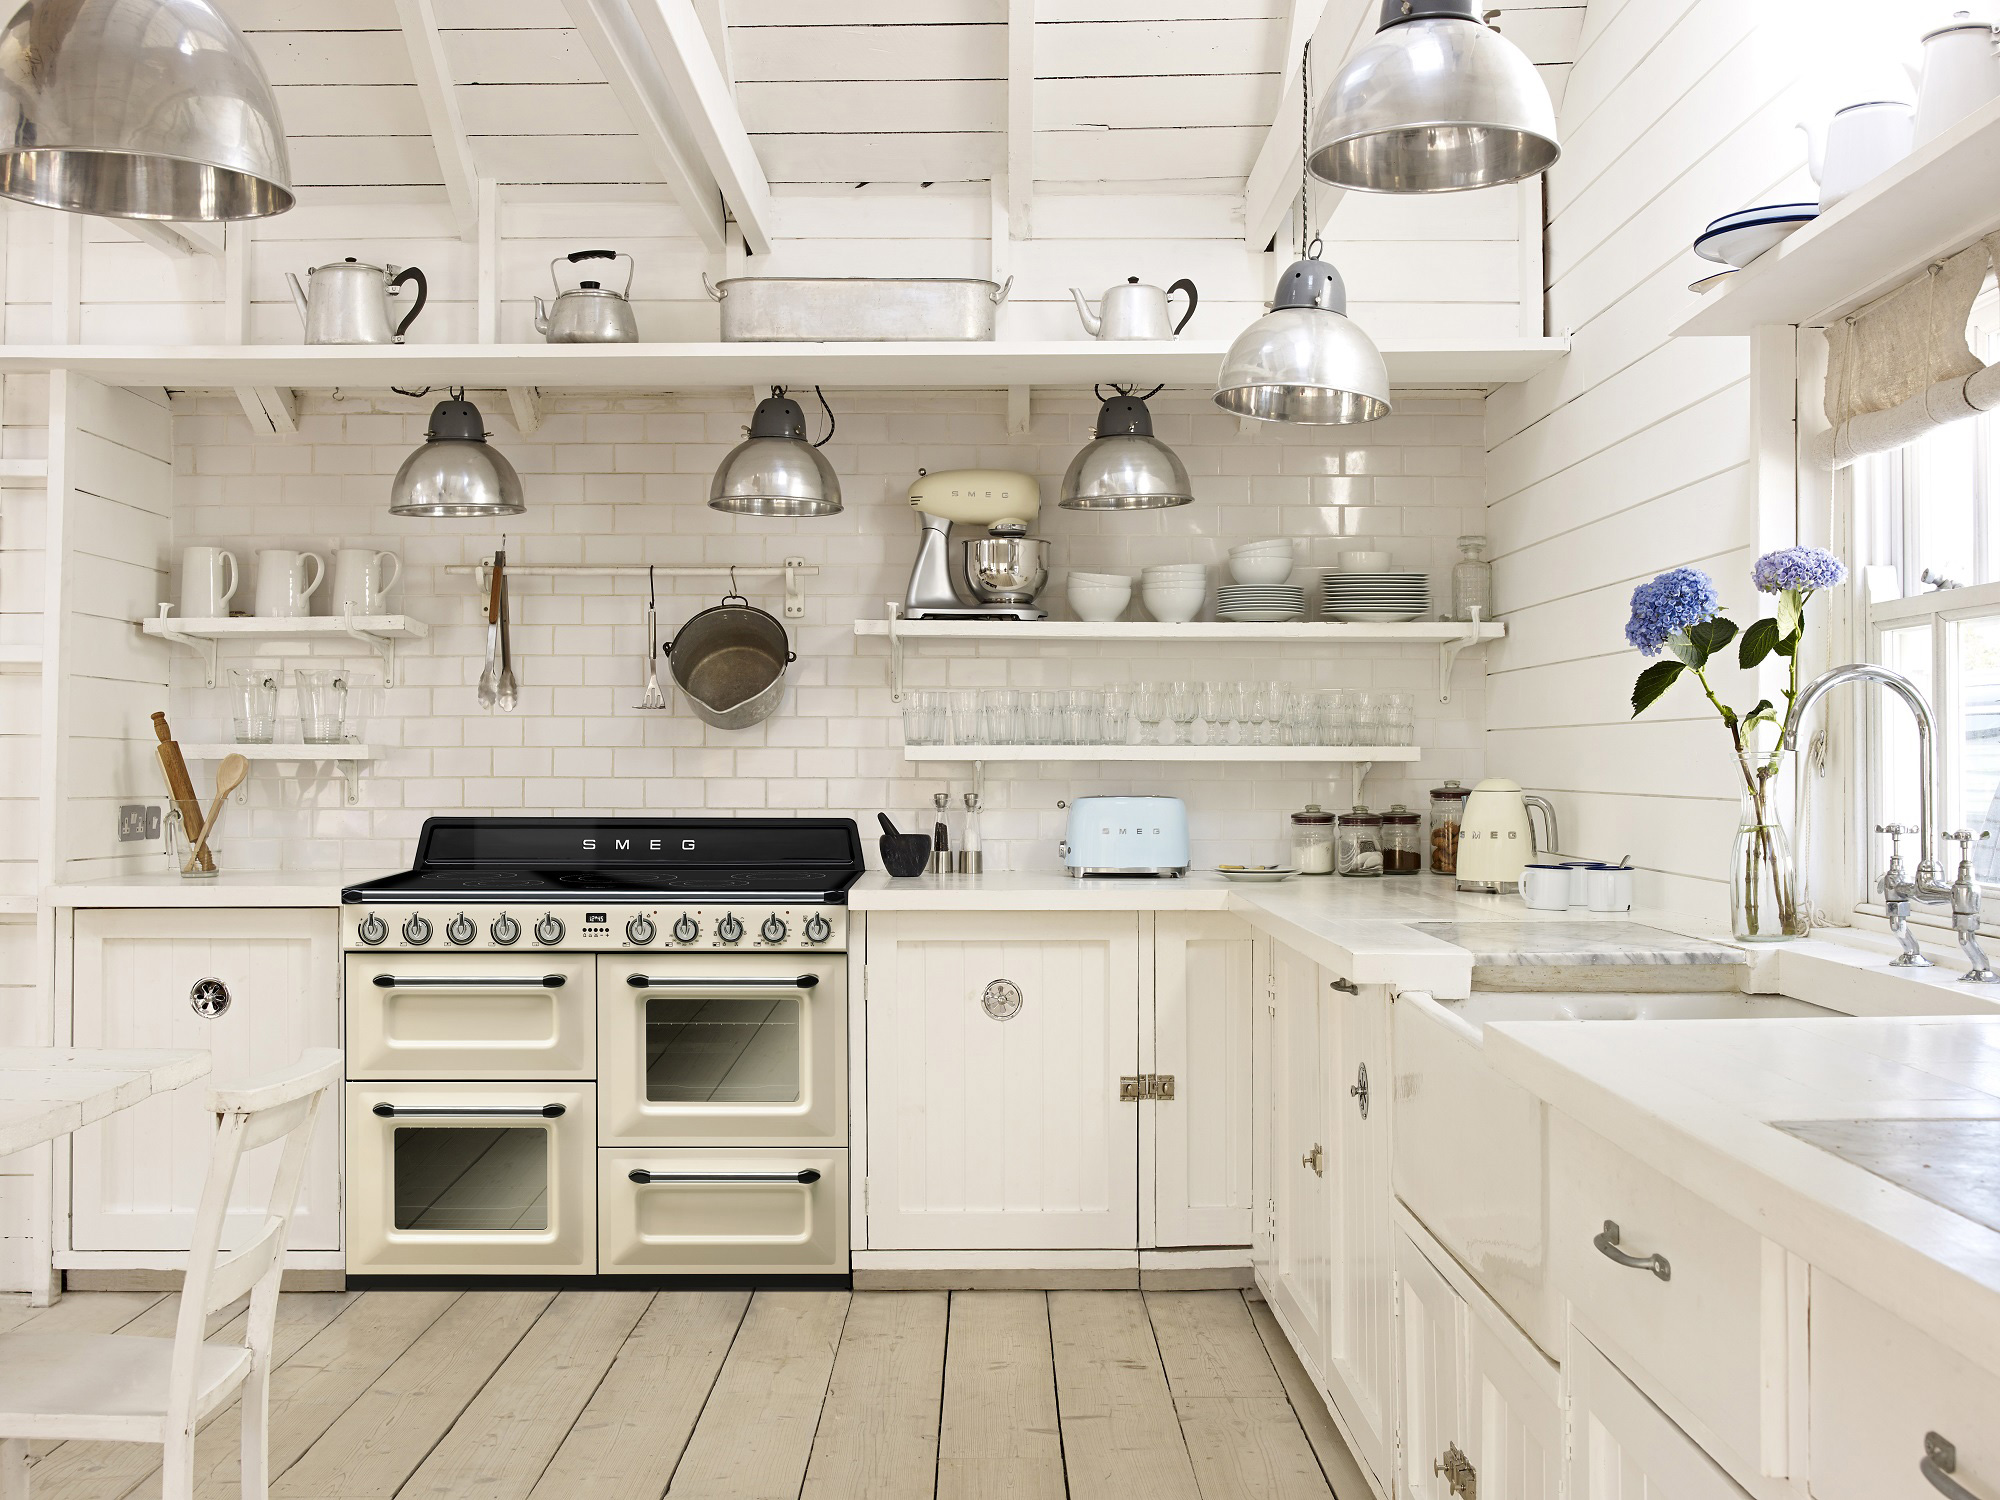 smeg_kitchen_appliances.jpg